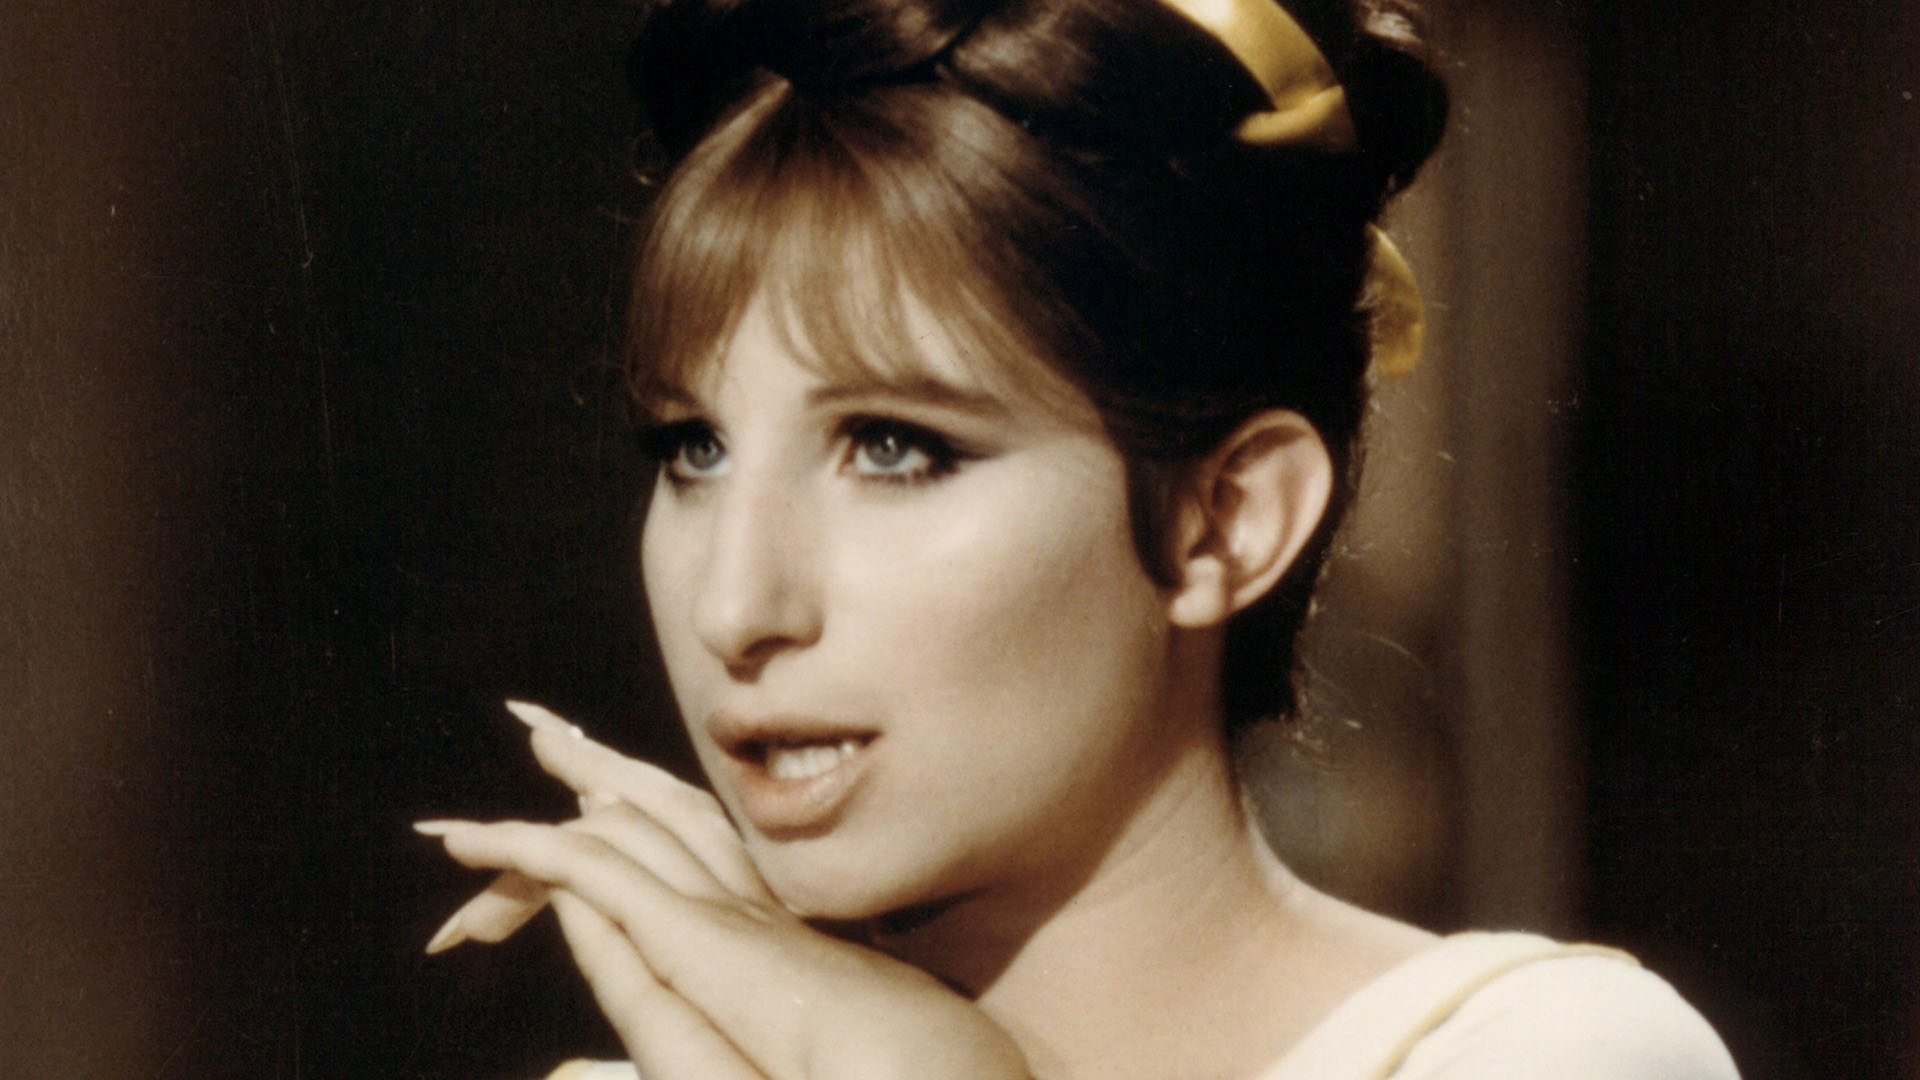 Barbra Streisand: My long nails are real